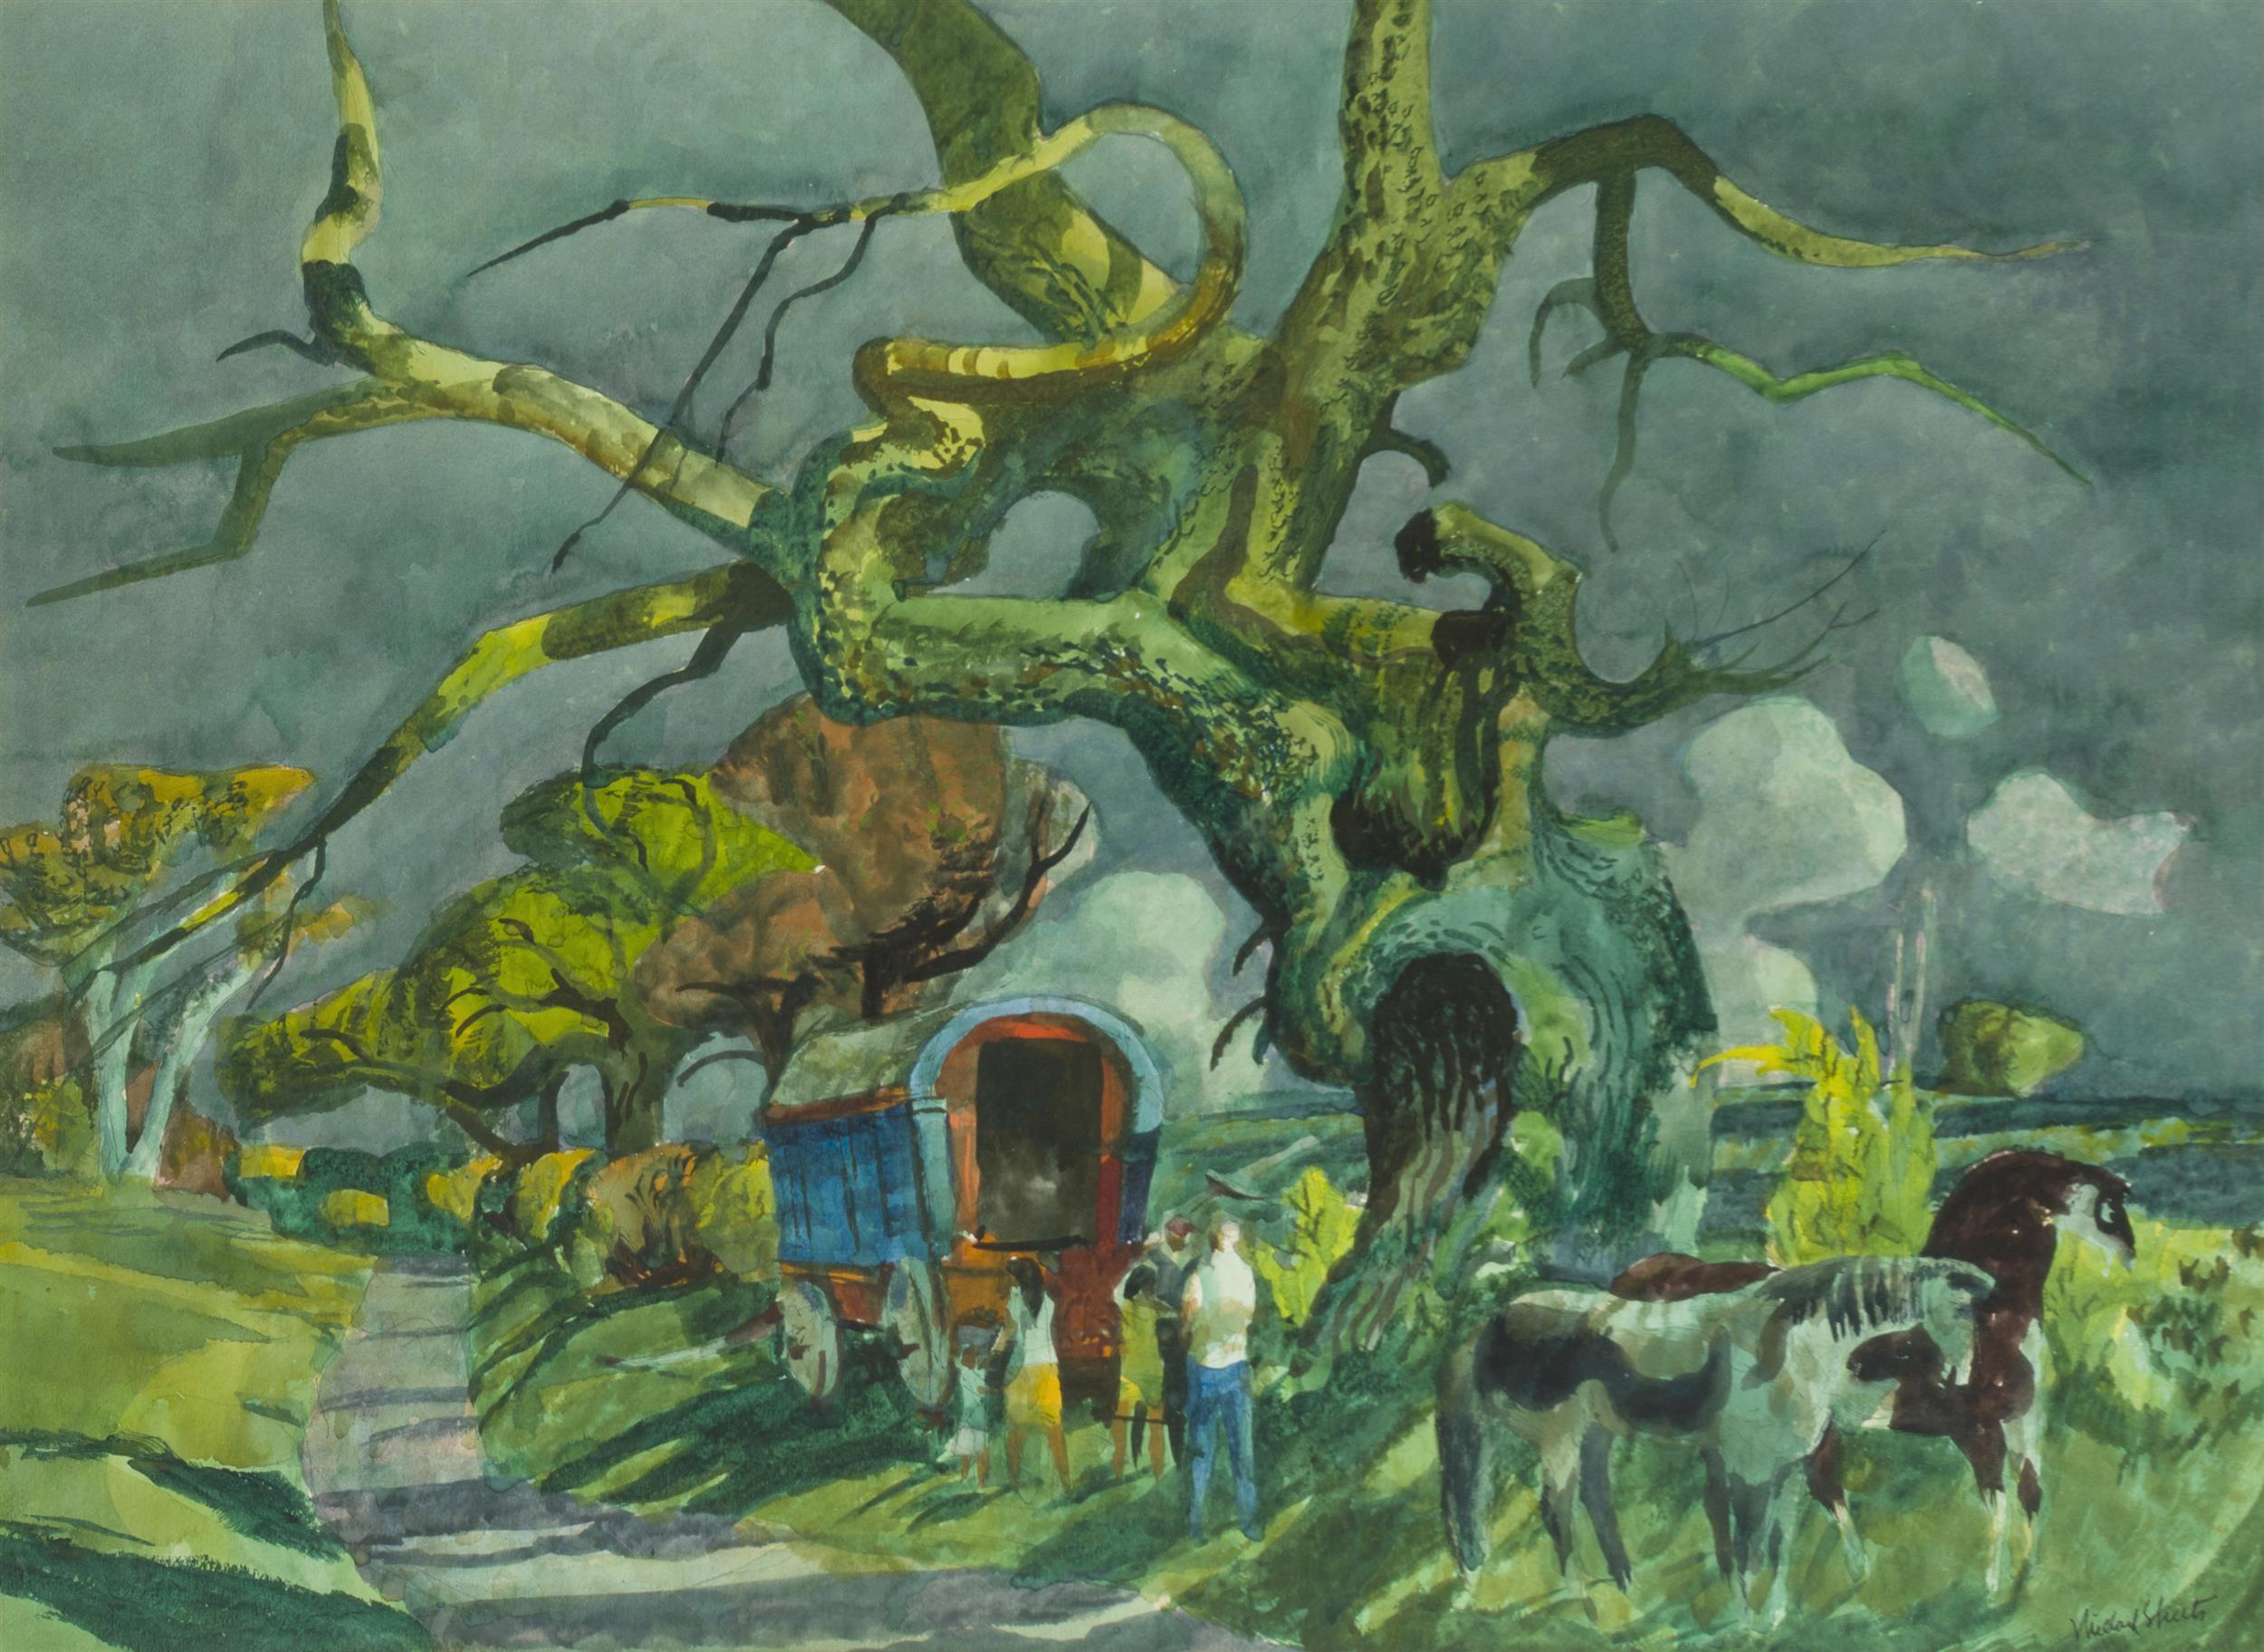 Millard Owen Sheets NA, (1907-1989 Gualala, CA), Gypsy camp with figures and horses, Watercolor on board under Plexiglas, Sight: 21.5""